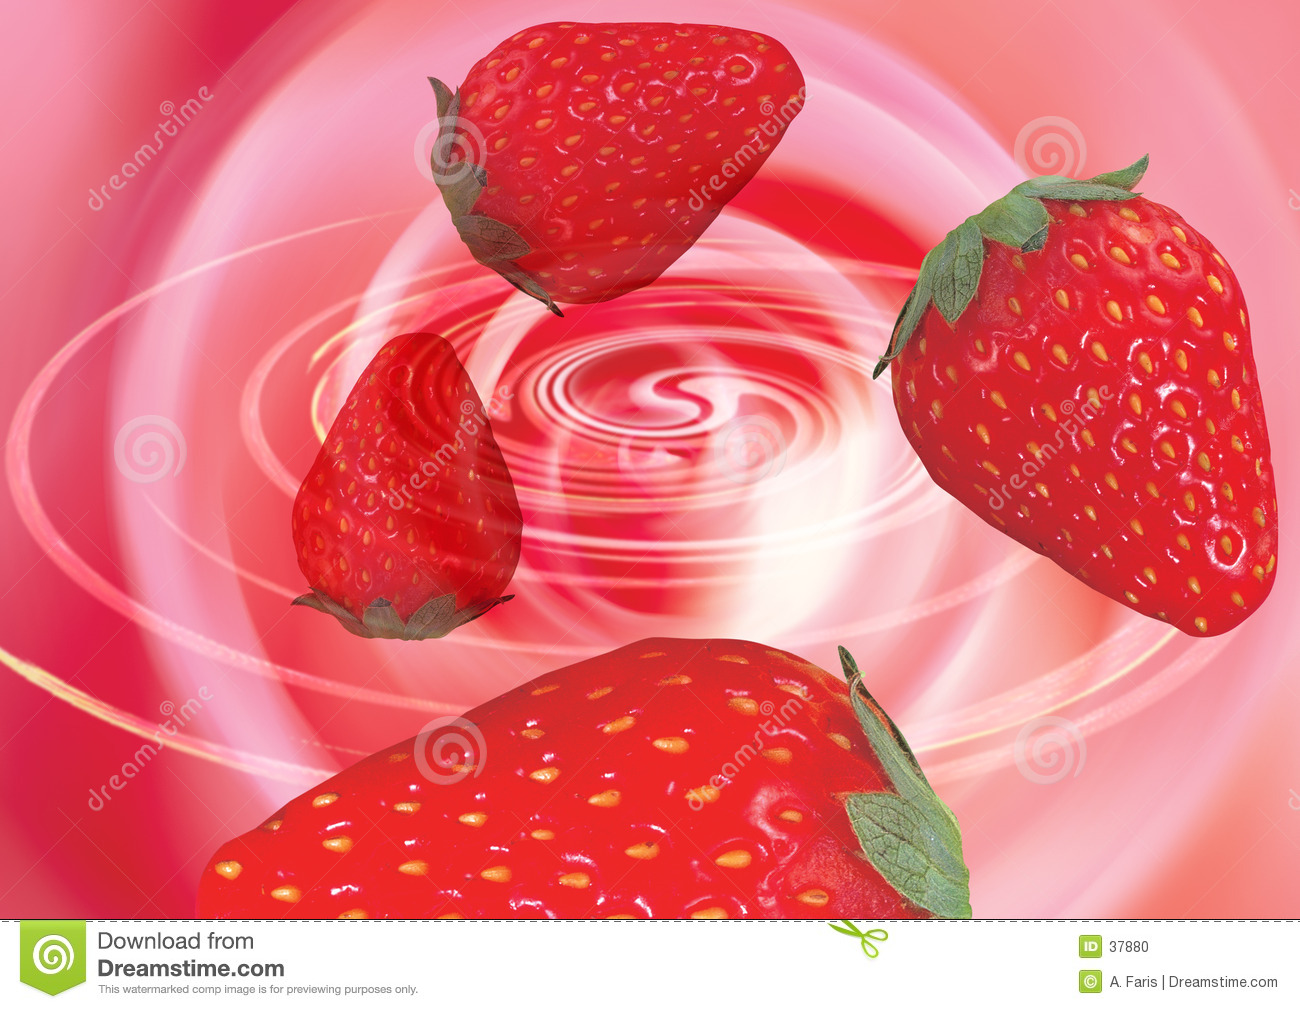 Strawberries in a whirlpool